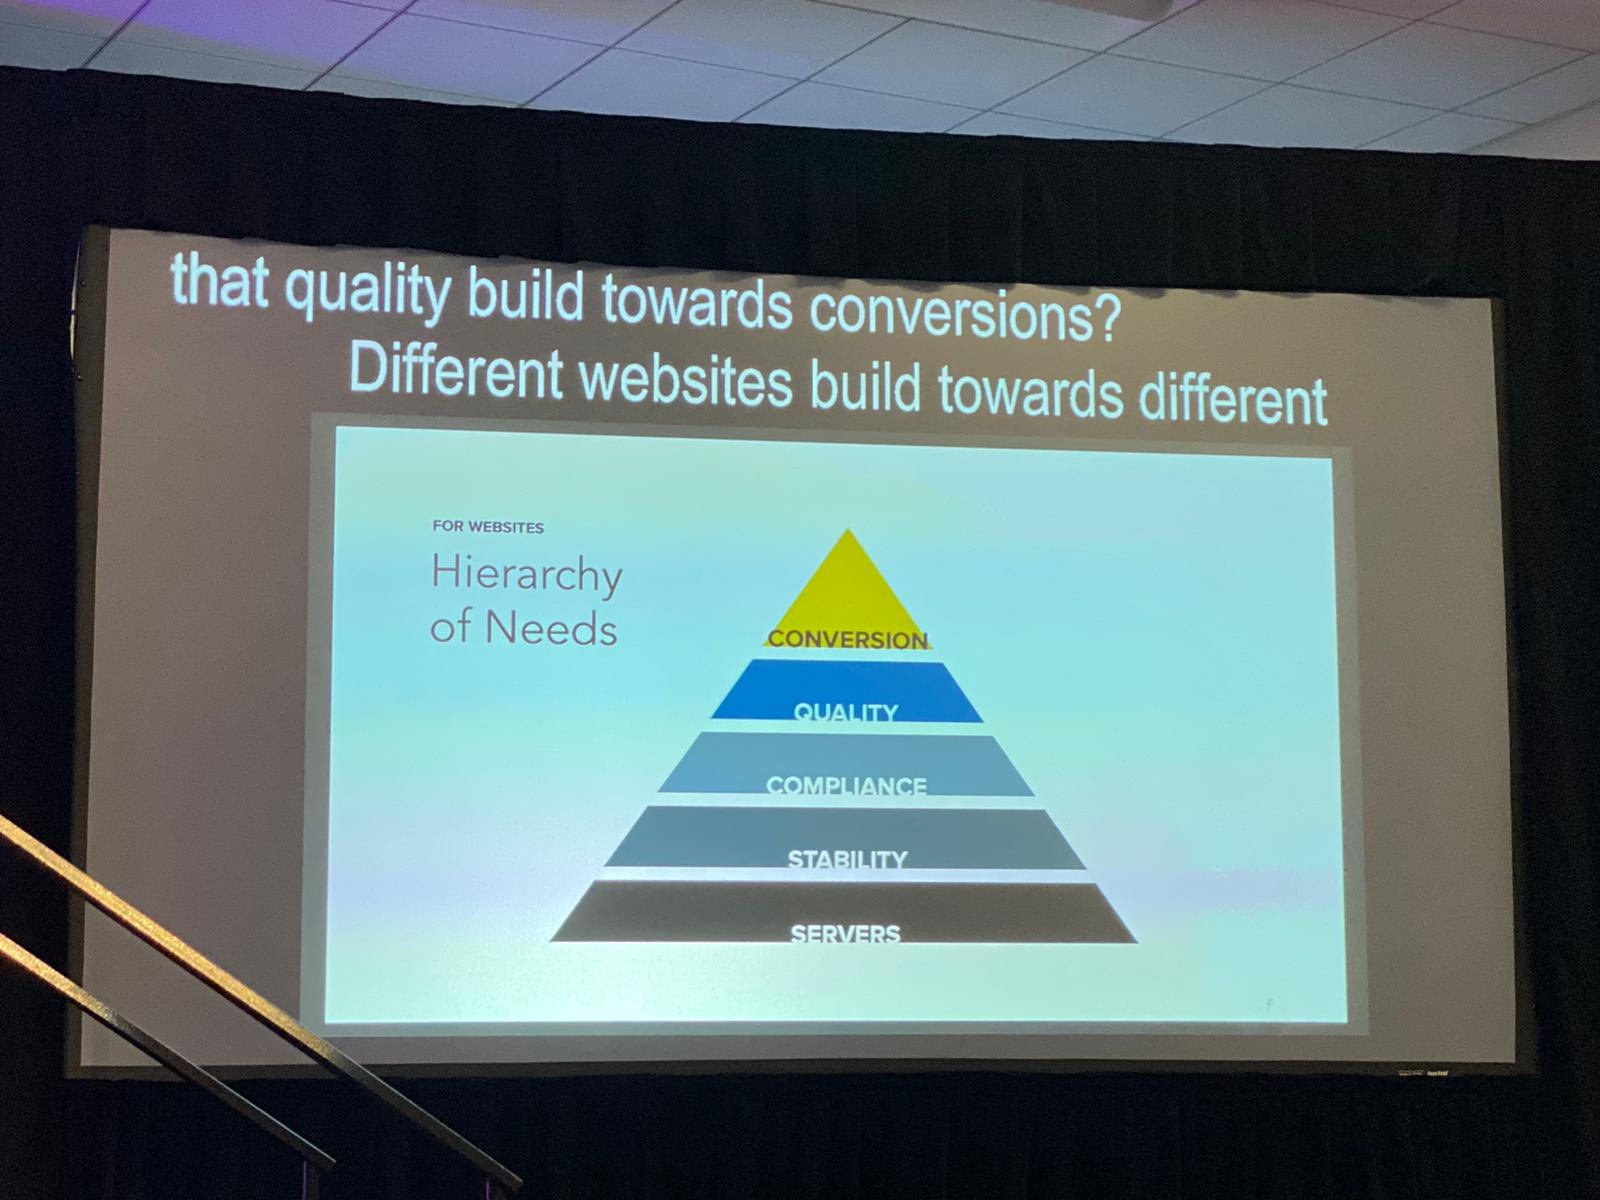 Maslow's hierarchy o fneeds applied to website performance and conversion